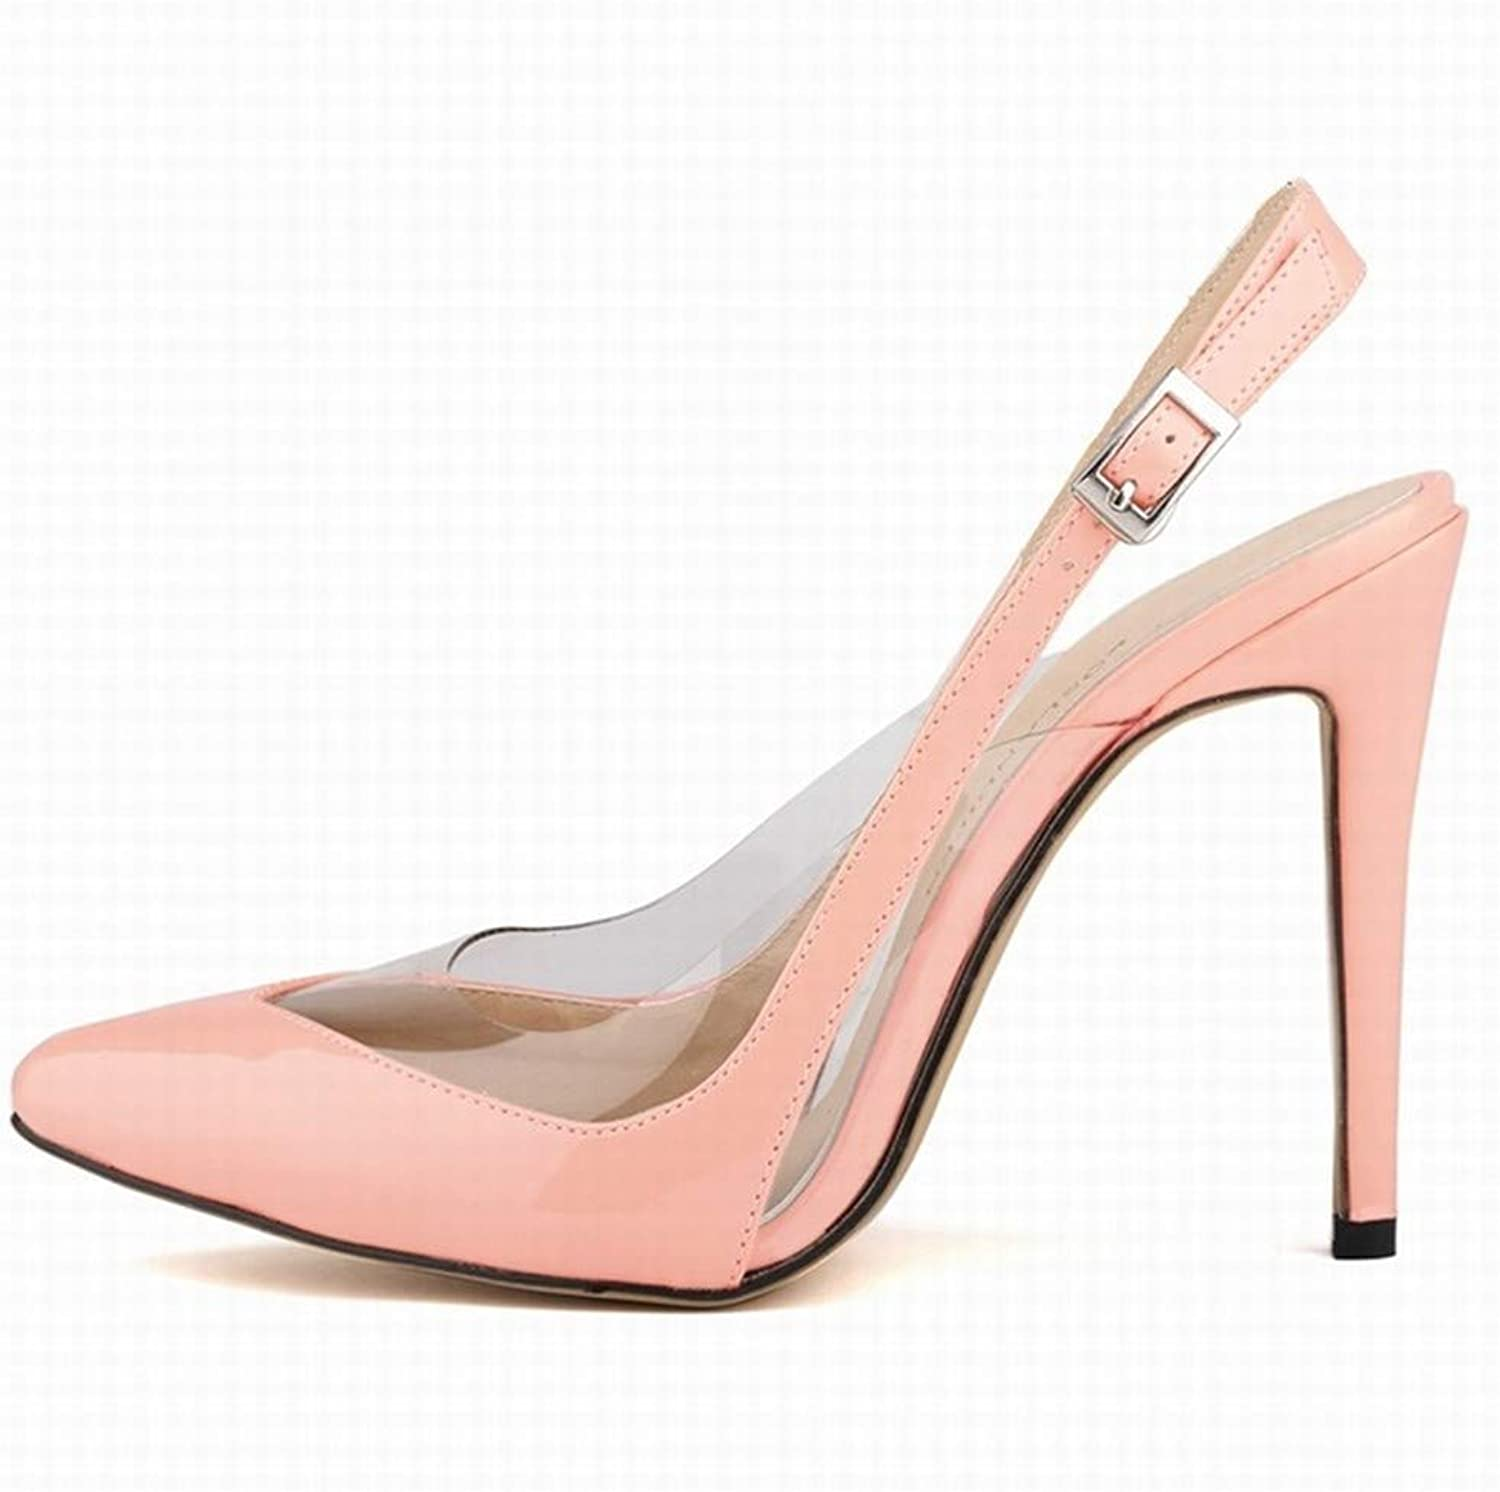 Women's Pointed Toe Slingback Ankle Tie High Heel Slip On Sexy Party Wedding